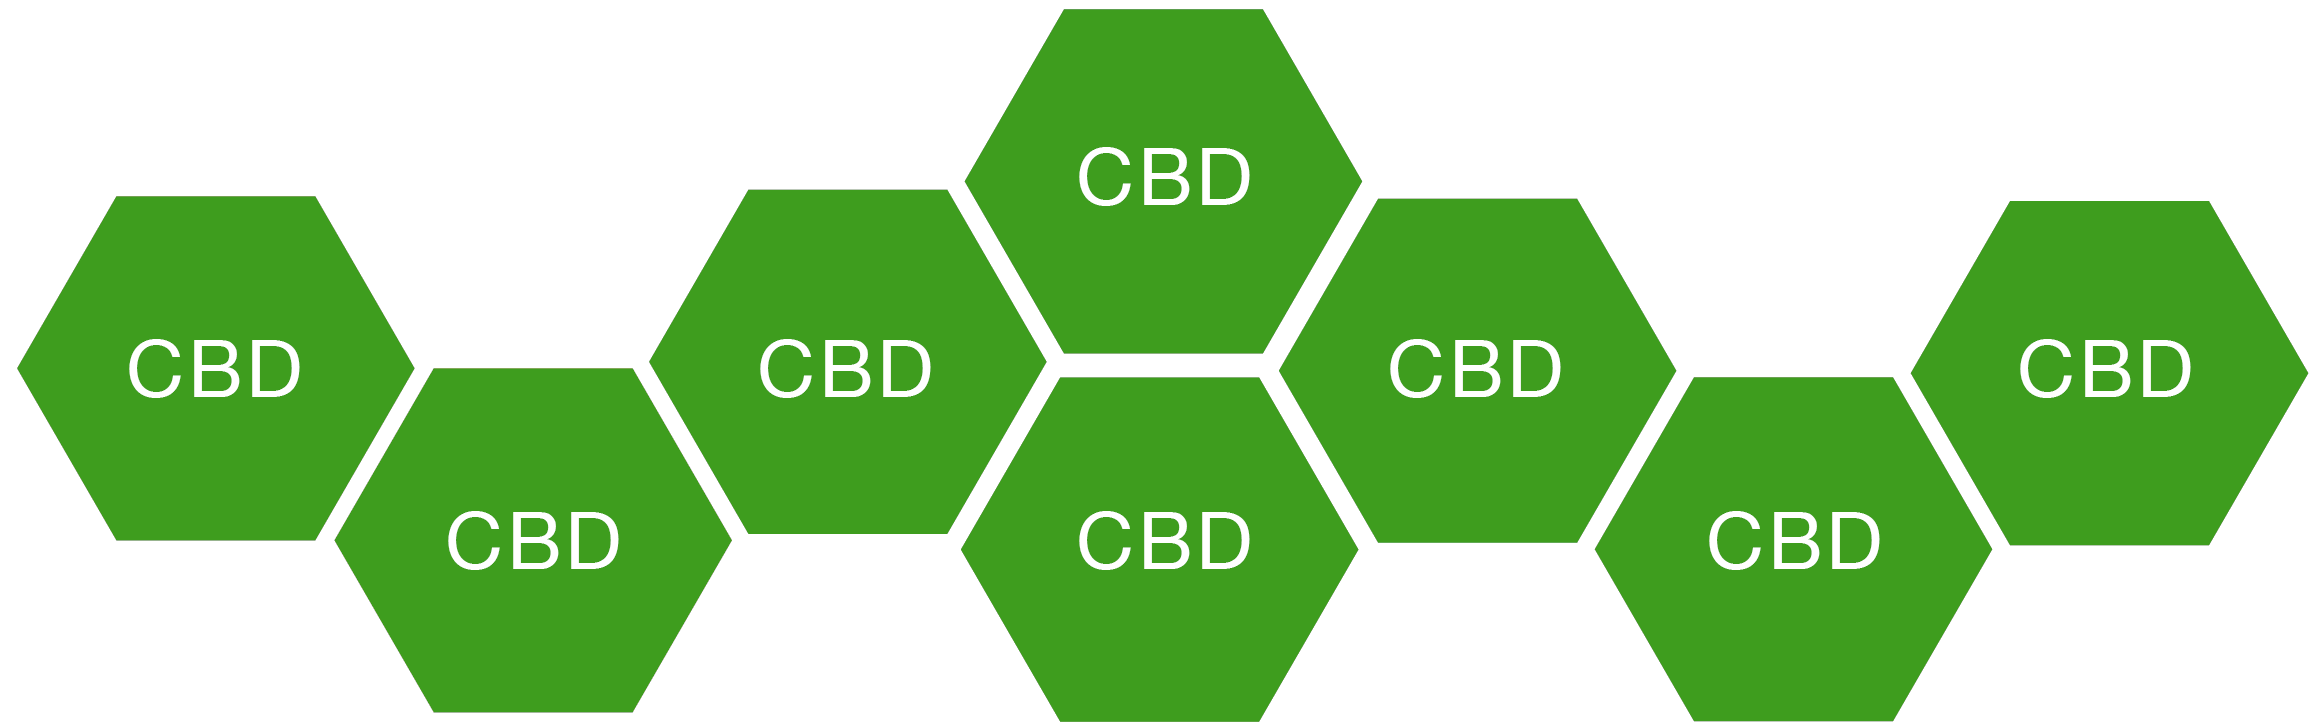 cbd isolate diagram